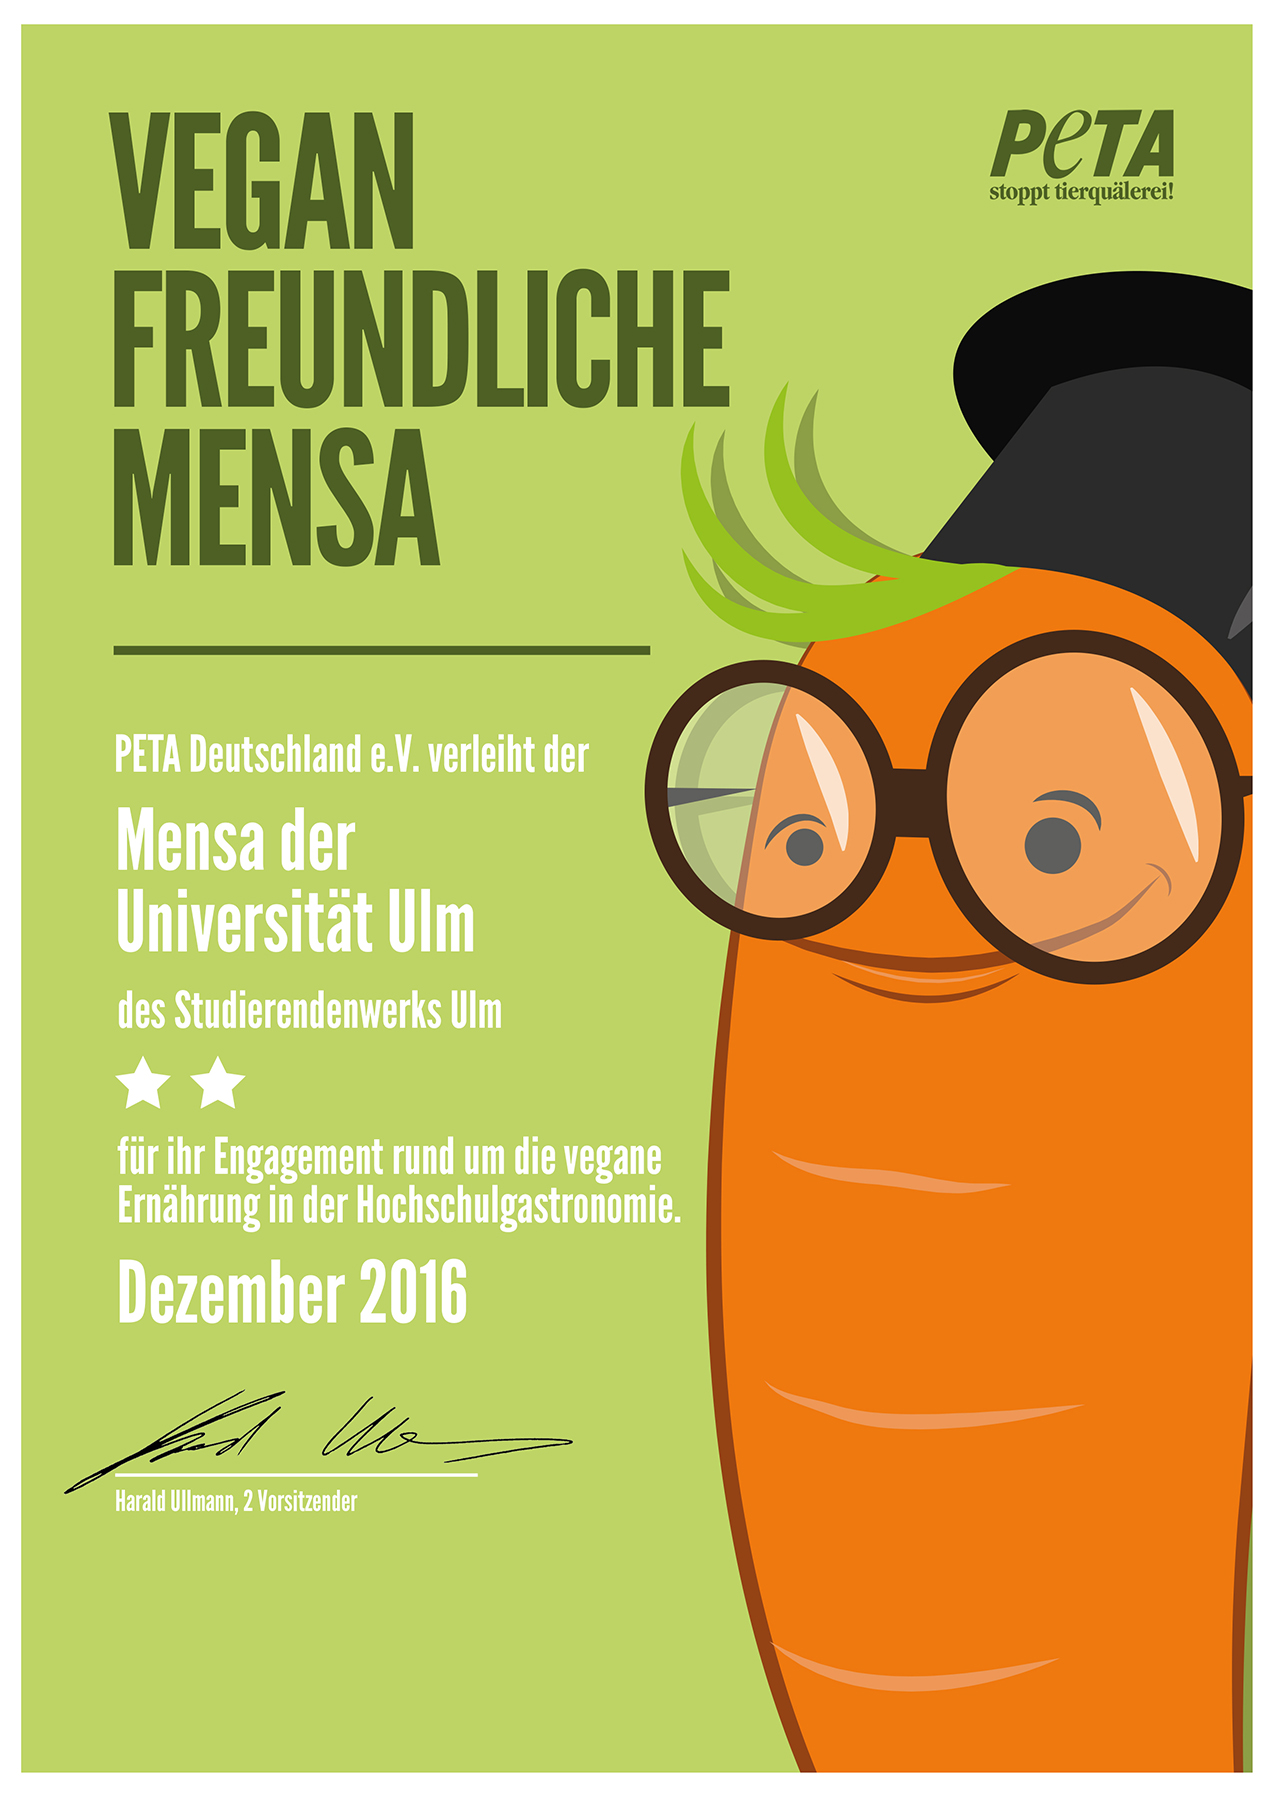 Quality studierendenwerk ulm certificate from the animal rights group peta as vegan friendly mensa 1betcityfo Images